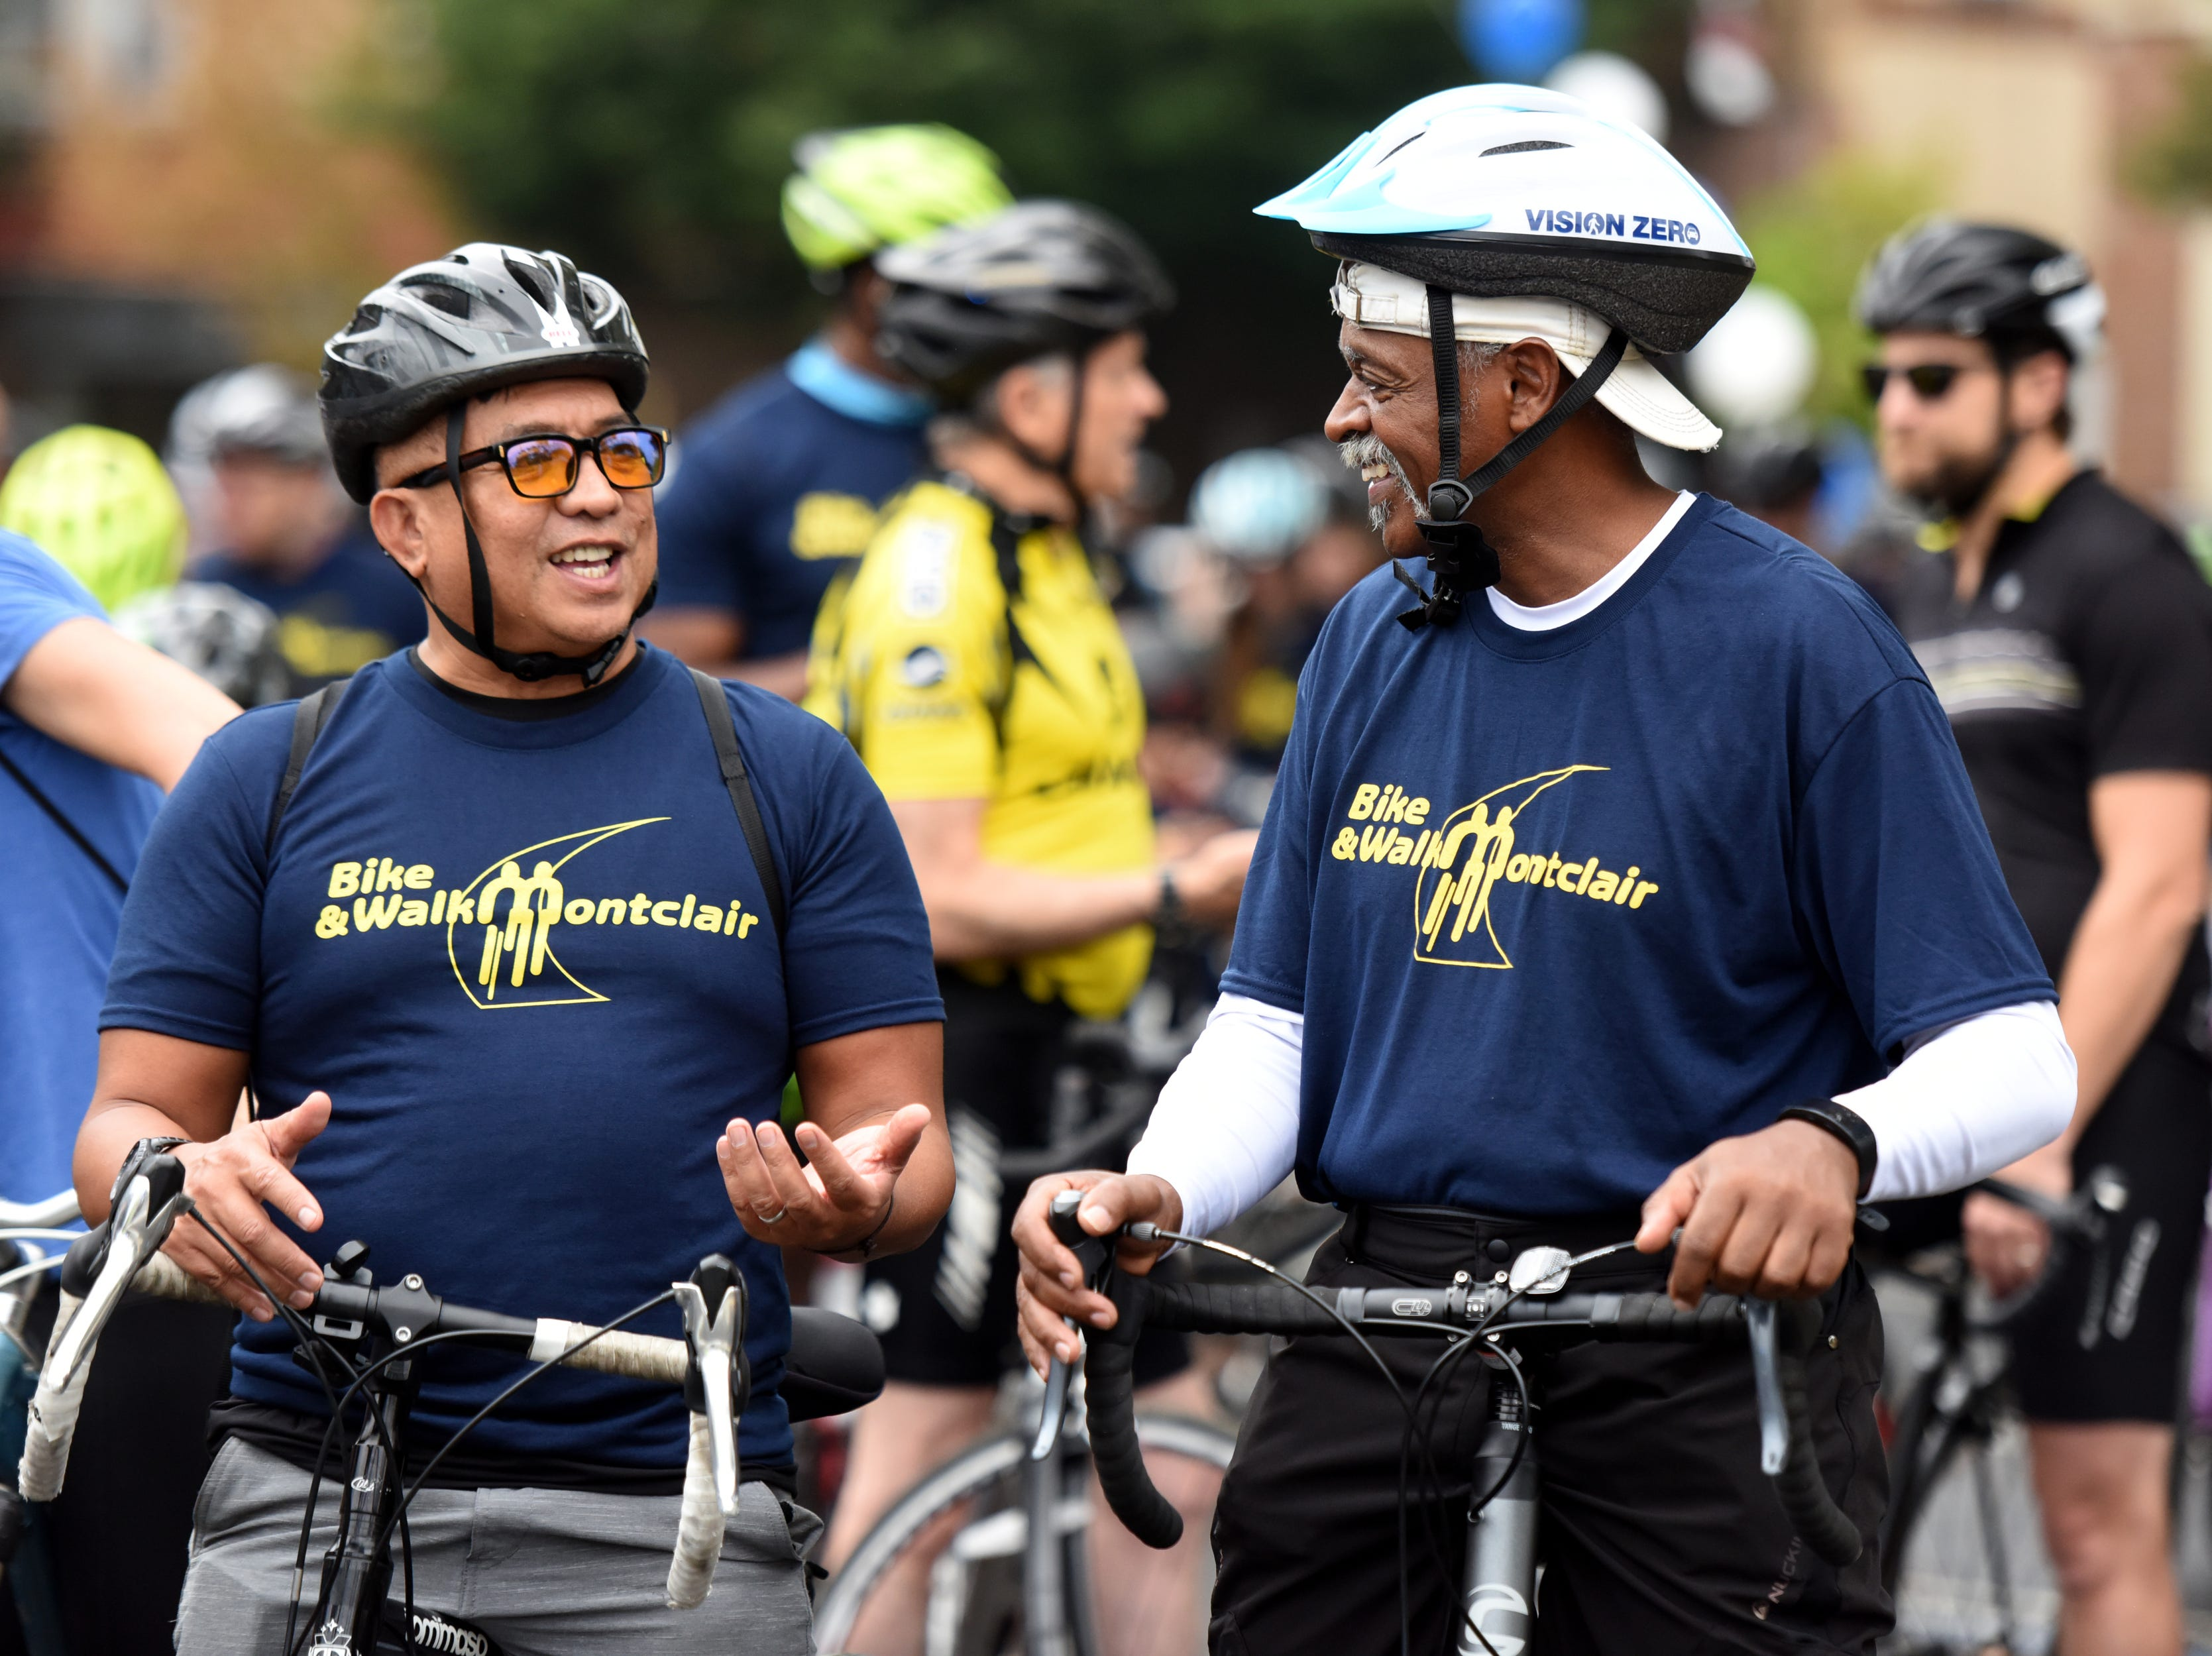 The Tour de Montclair a family-friendly bike ride with 6- and 12- mile options was held on Sunday, October 7, 2018. Cyclists leave for the ride next to Crane Park. Anthony Villanuva and Reynard Morrell of Newark, wait at the start line for the beginning of the ride.